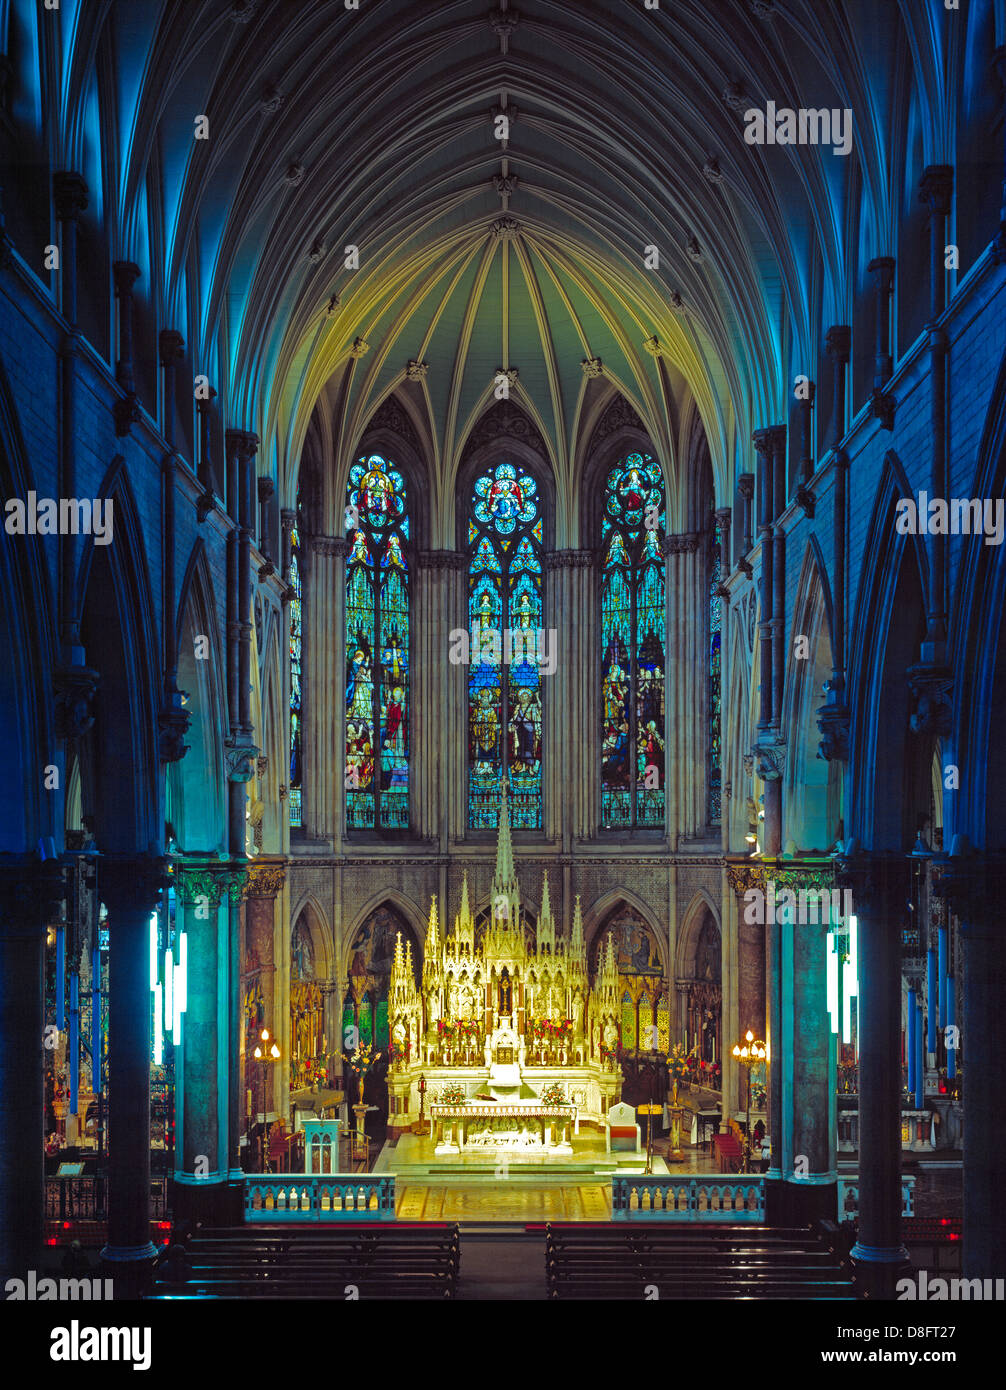 The Interior Of A Gothic Style Catholic Church St Jameson Jamess Street